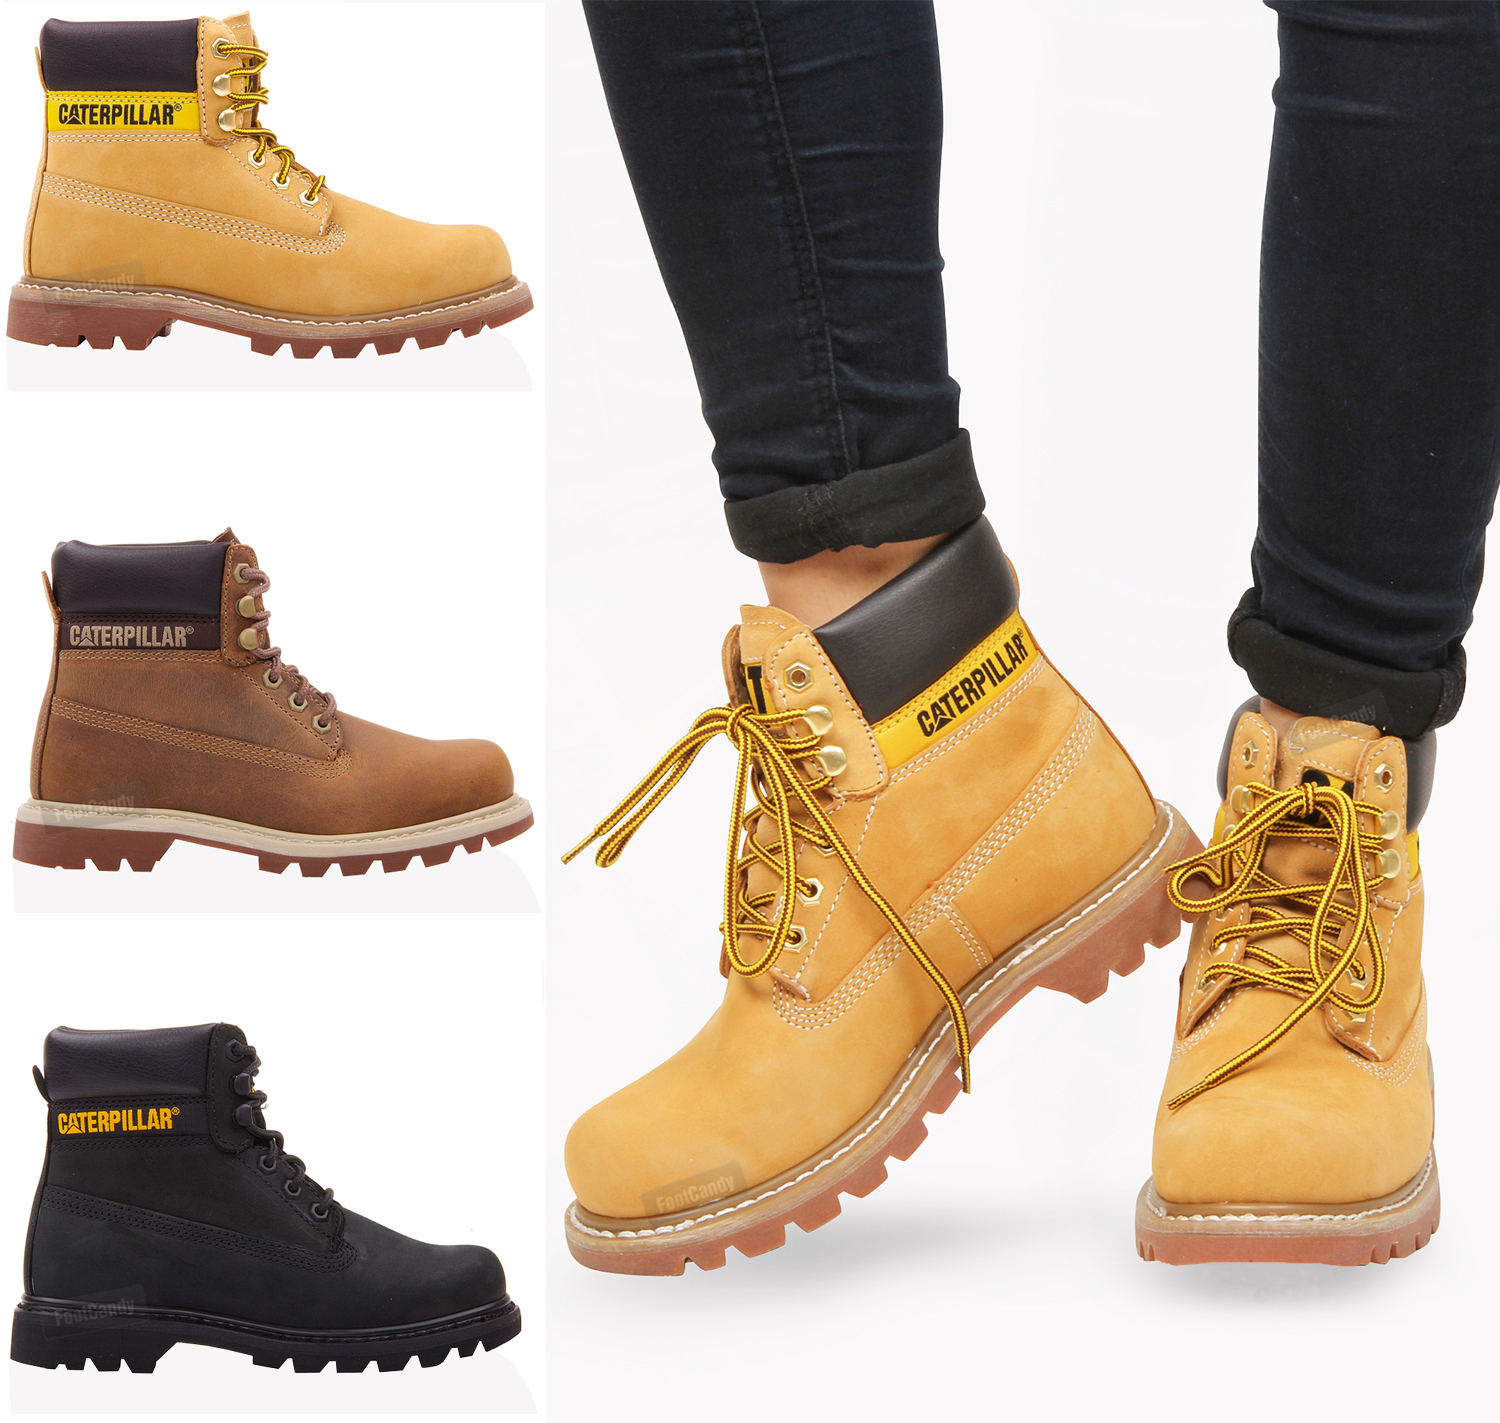 Cool 16 Best Images About Caterpillar Boots On Pinterest | Cats Never Let Me Down And Cap Du0026#39;agde